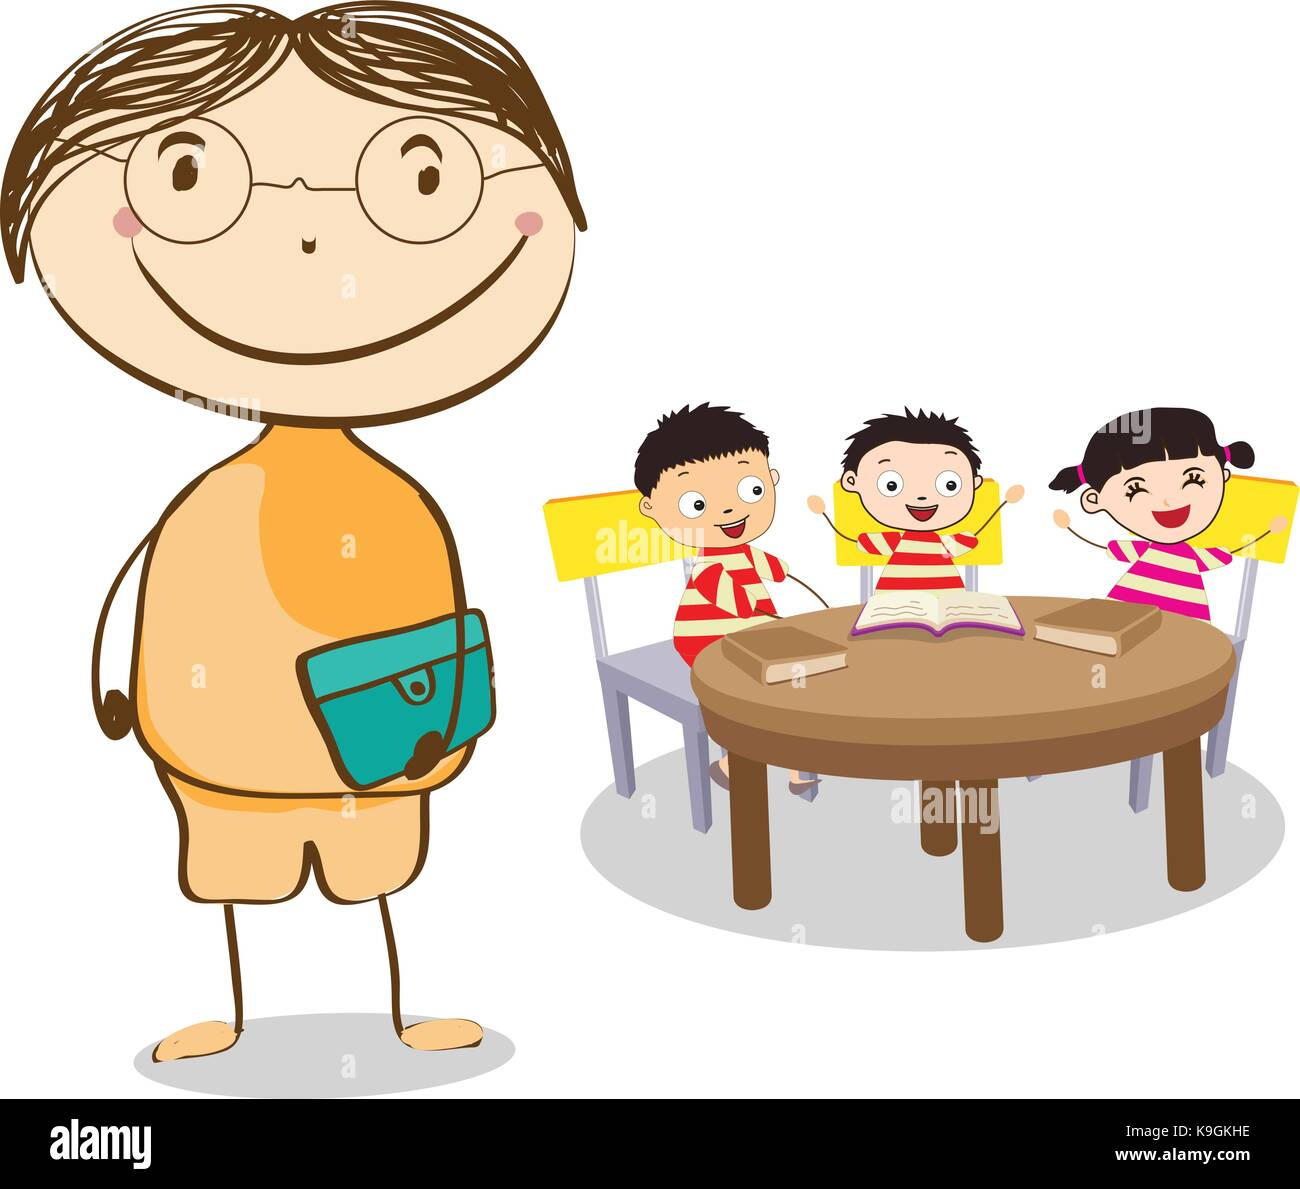 Elementary School Age Stock Vector Images